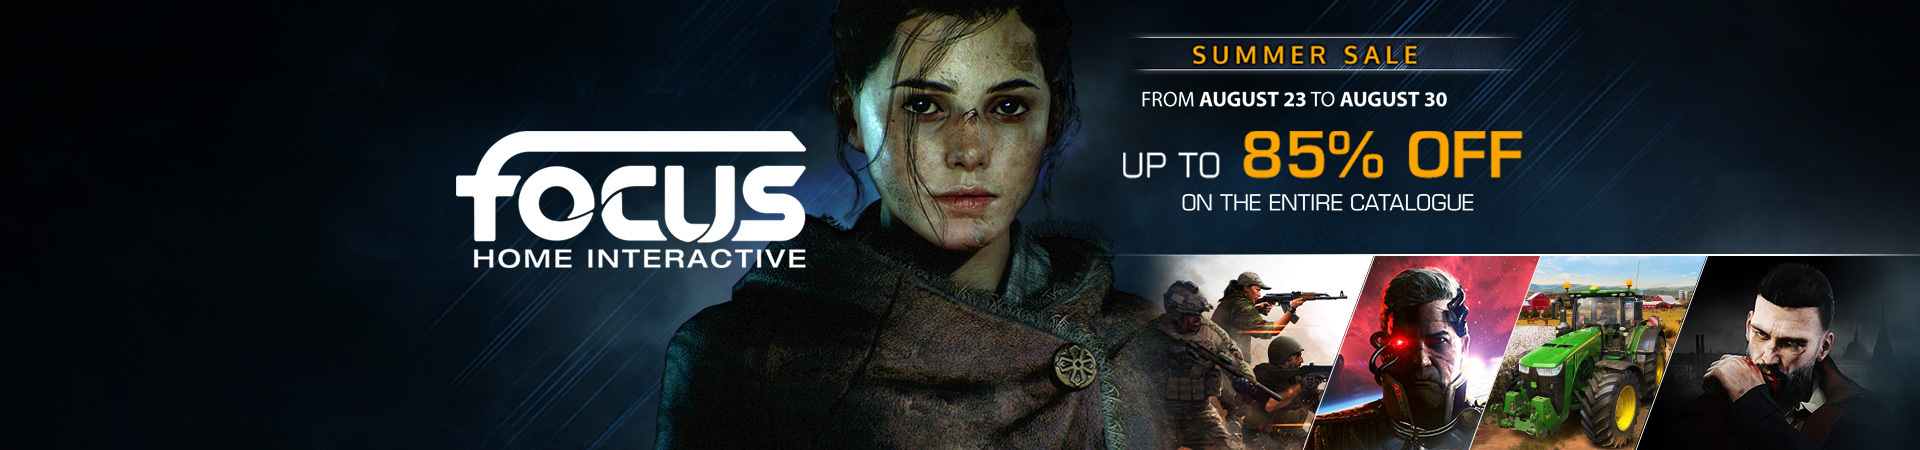 Focus Home Interactive Sale